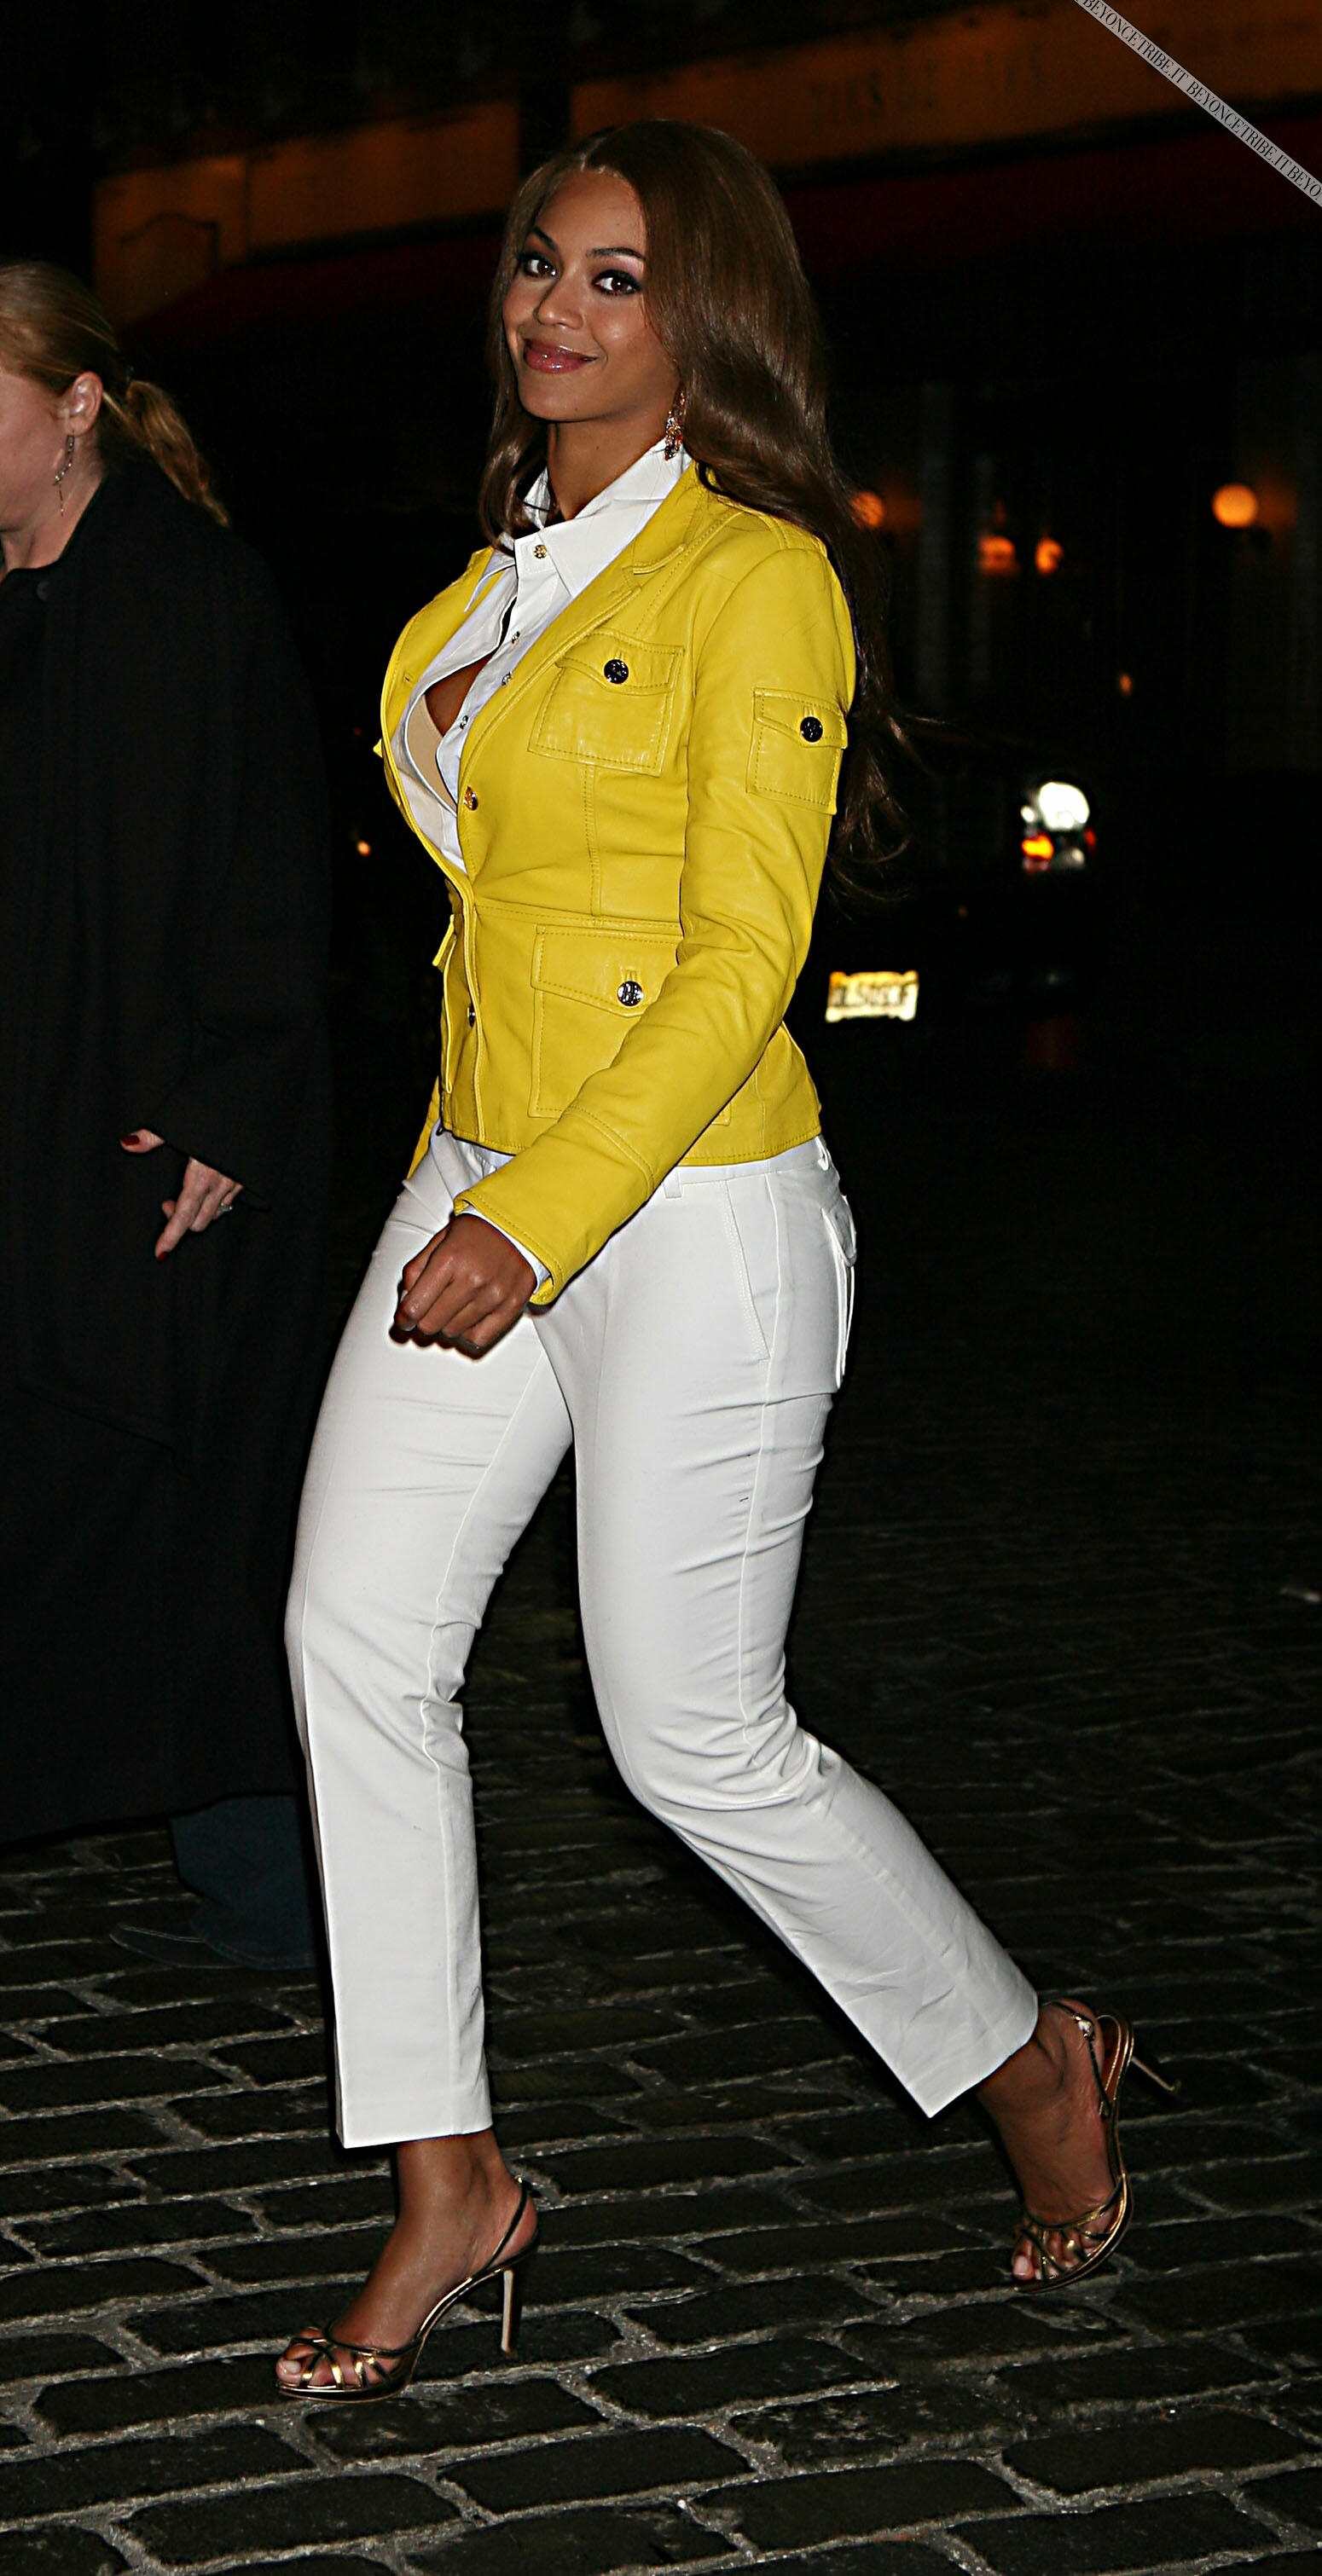 Beyonce Out &amp; About In NYC (March 9, 2007)